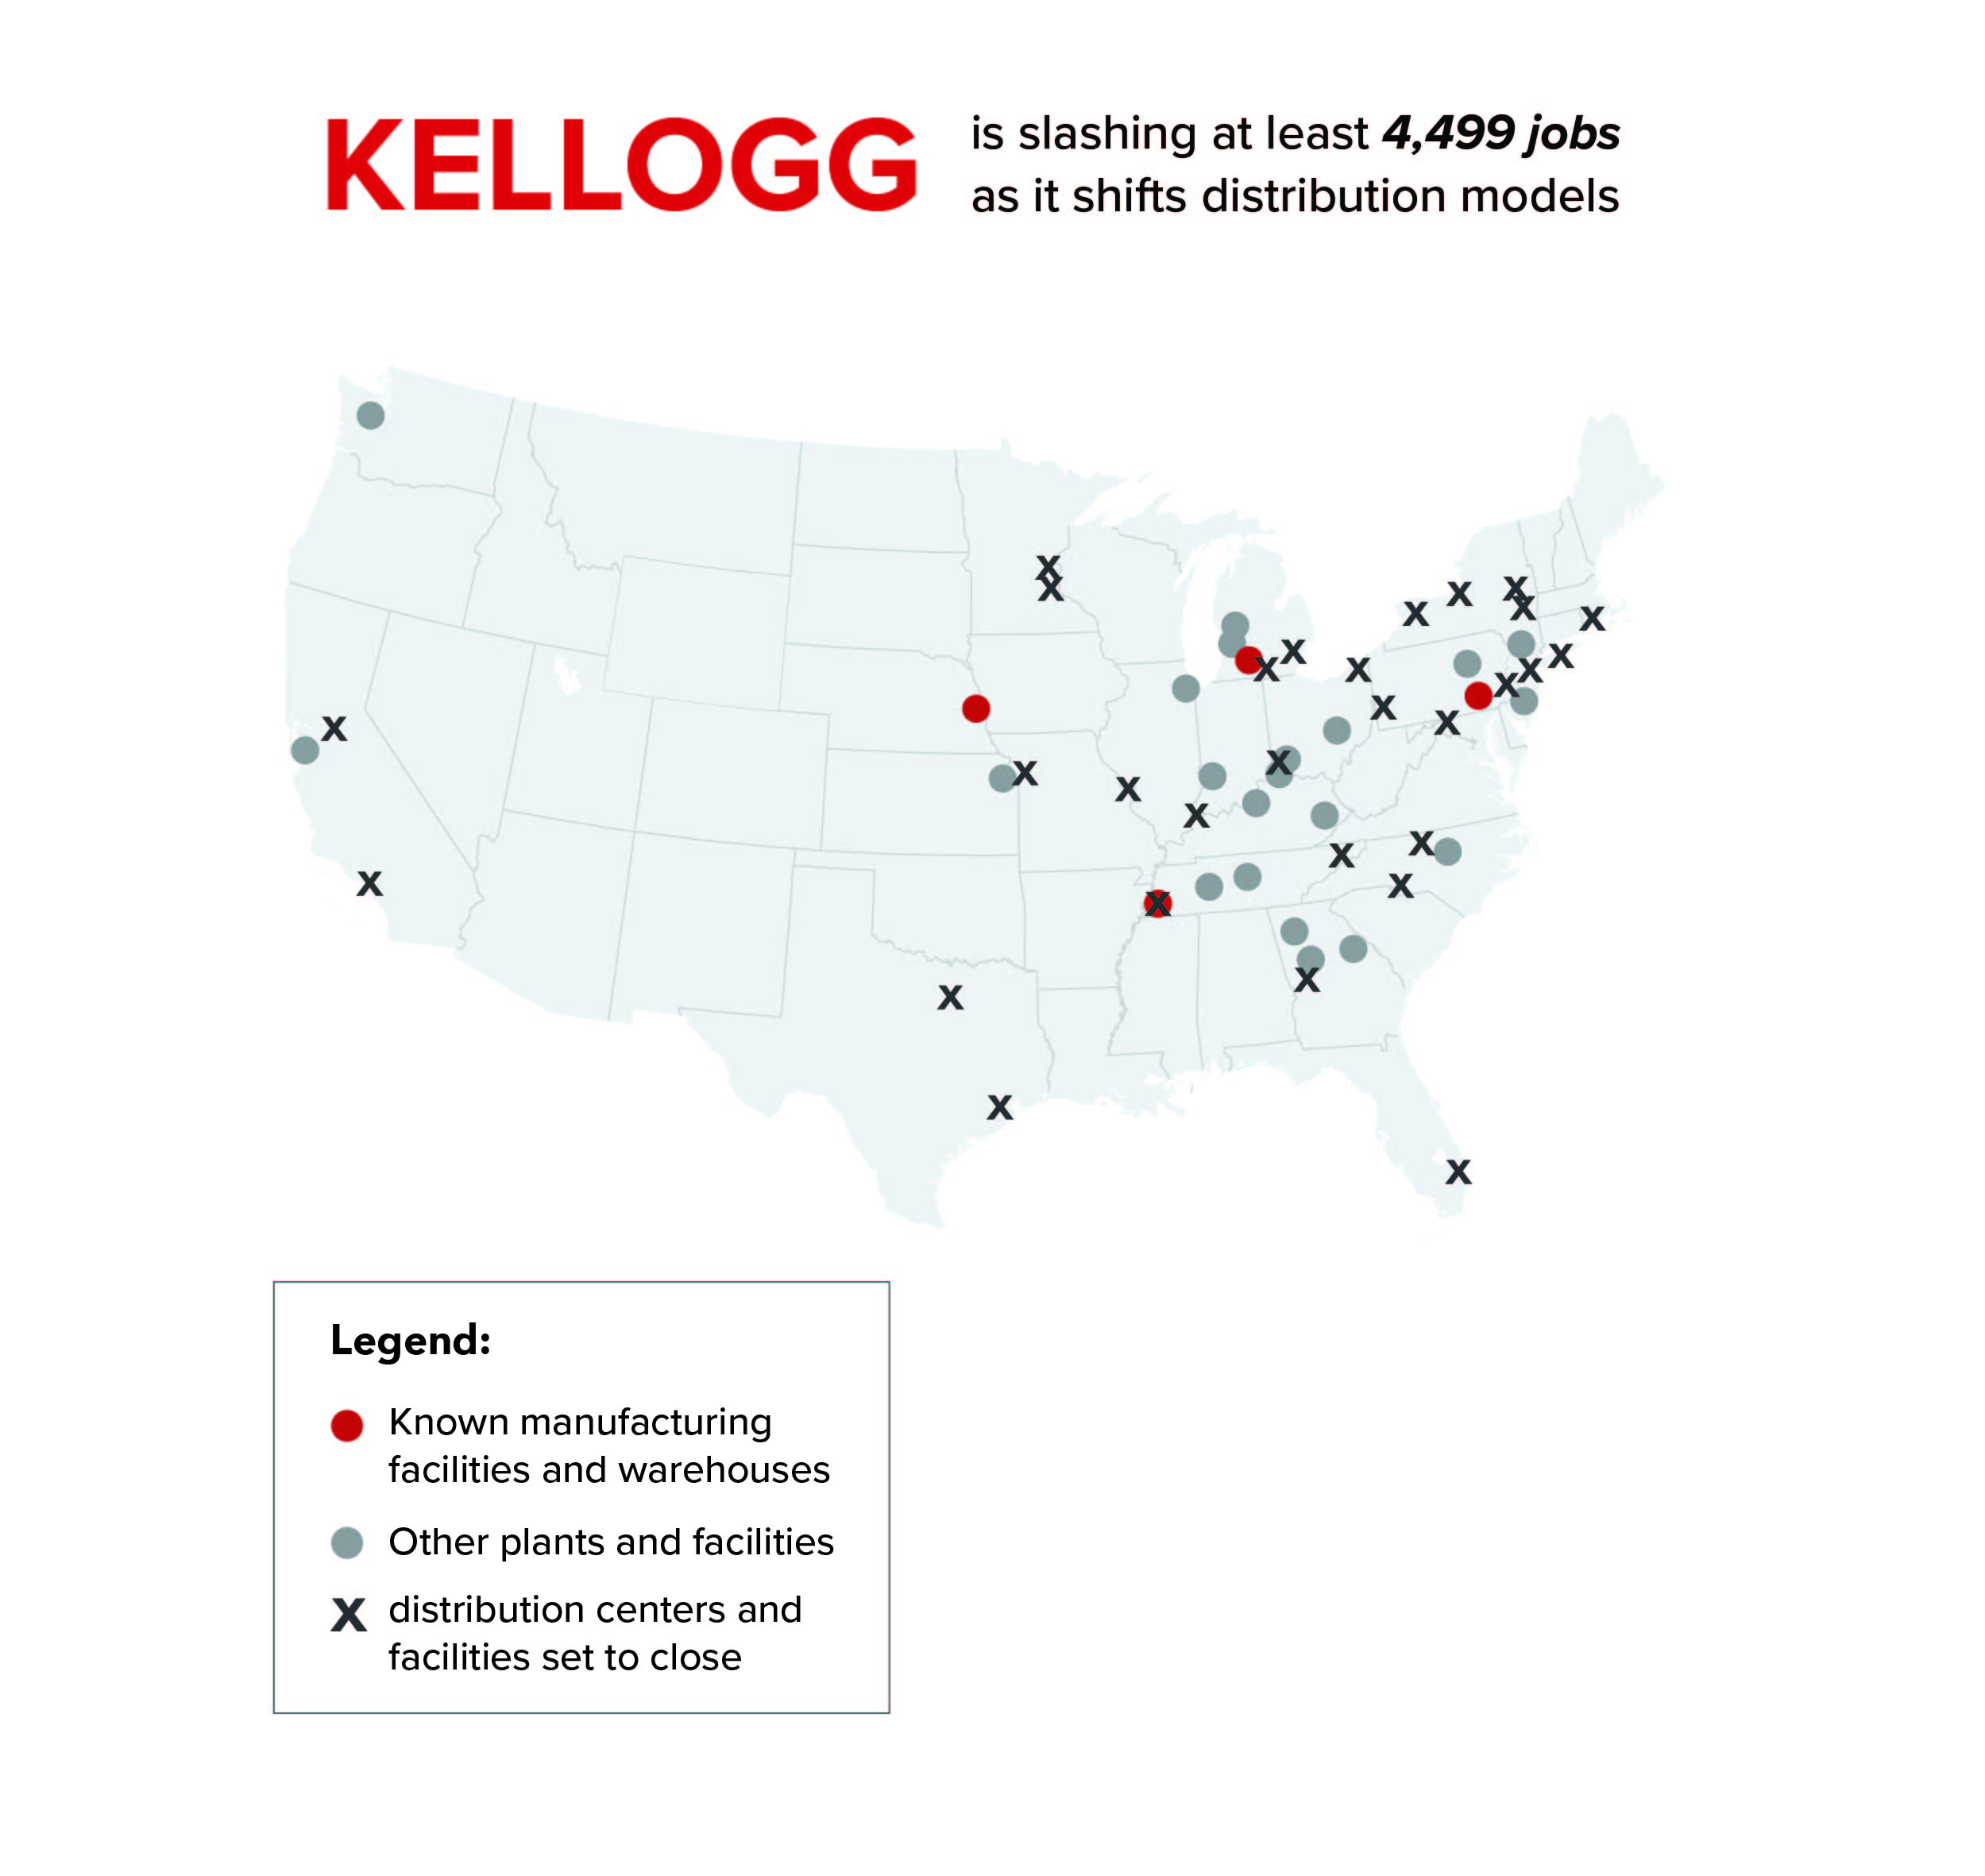 Kellogg's new supply chain model comes at a high cost